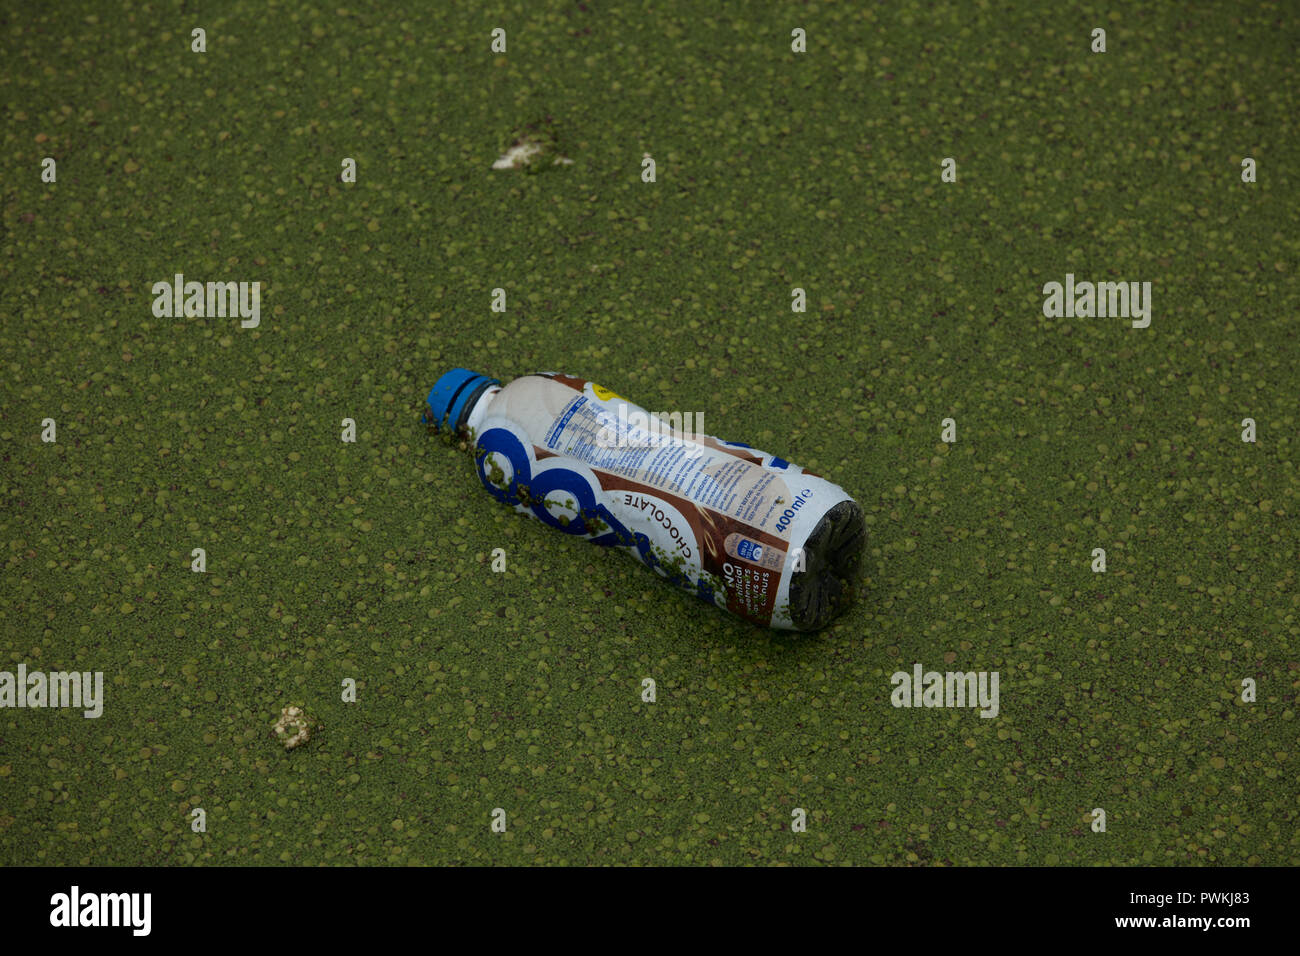 Plastic beverage bottle floats in the water of Limehouse Basin, London, UK increasing pollution of canals, rivers and seas, needing urgent solutions. - Stock Image